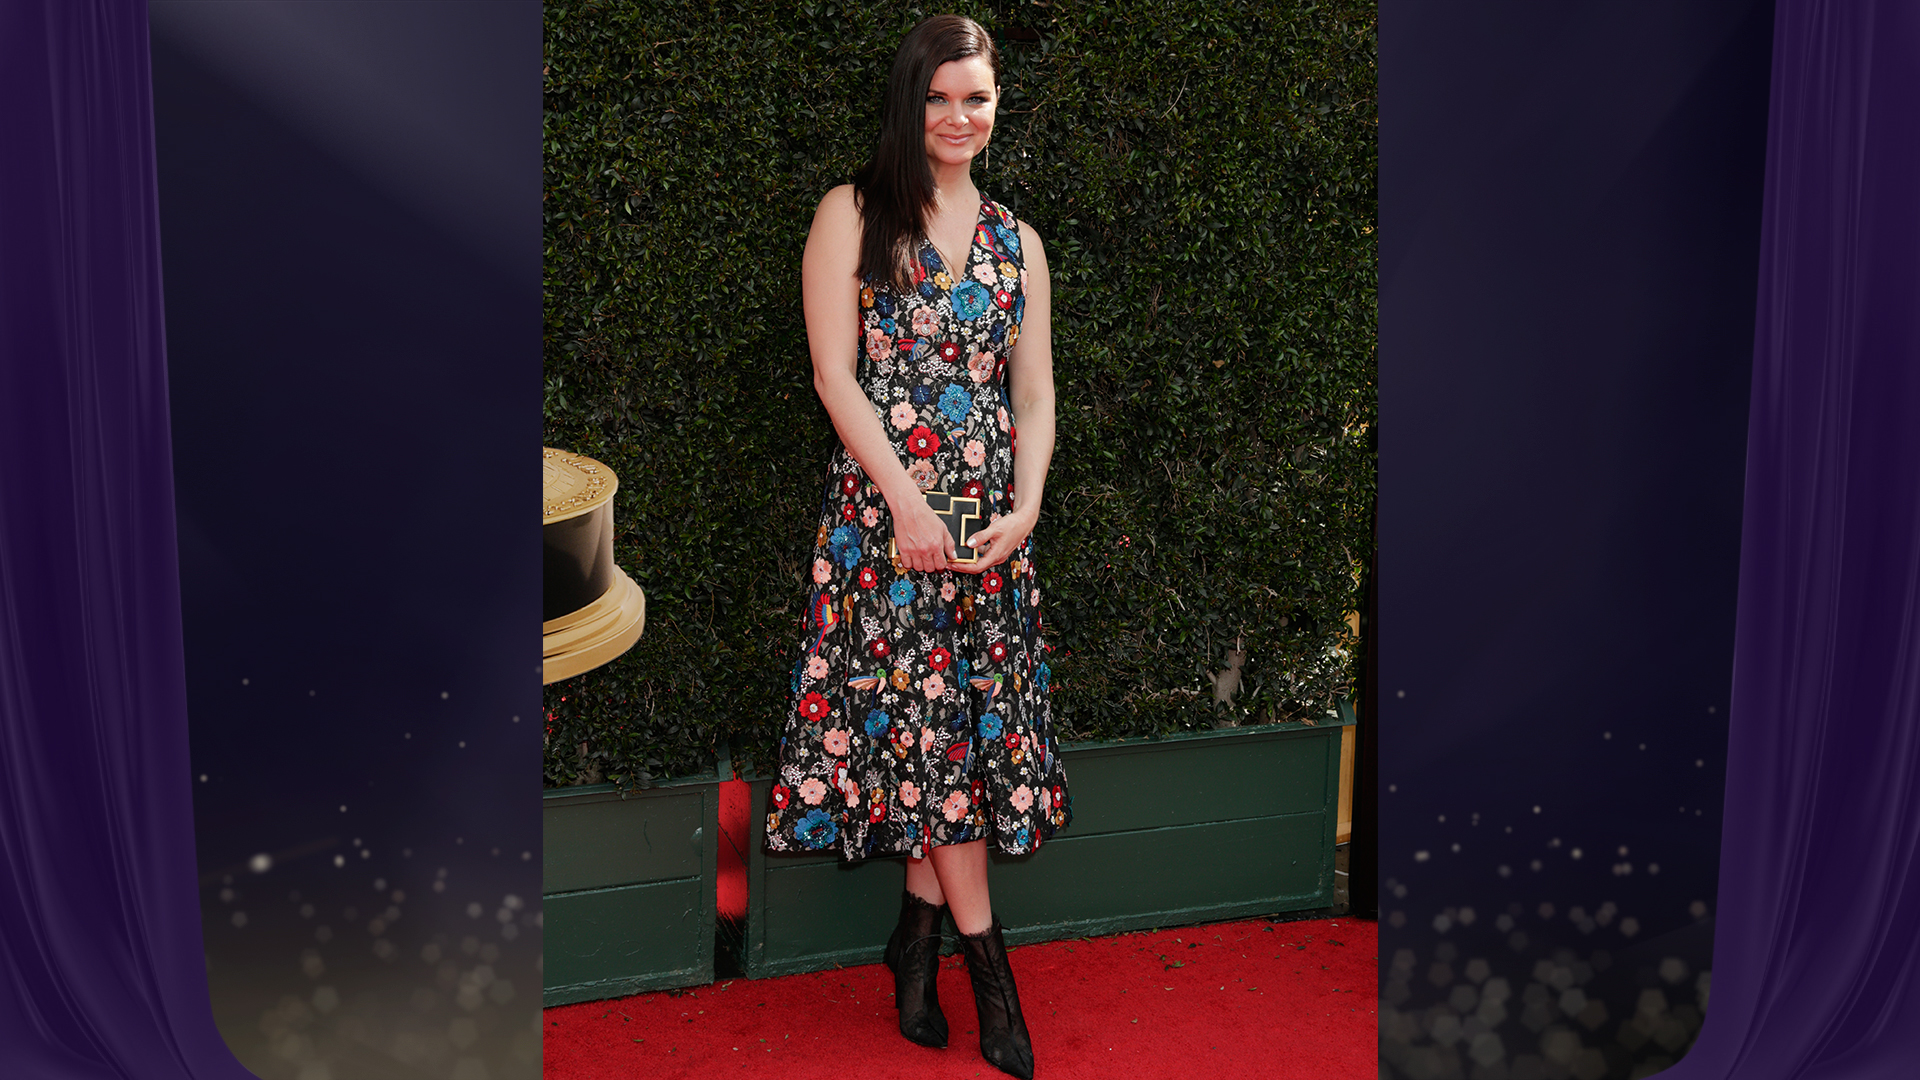 Heather Tom from The Bold and the Beautiful opts for a V-neck, tea-length black dress covered with floral appliqués.